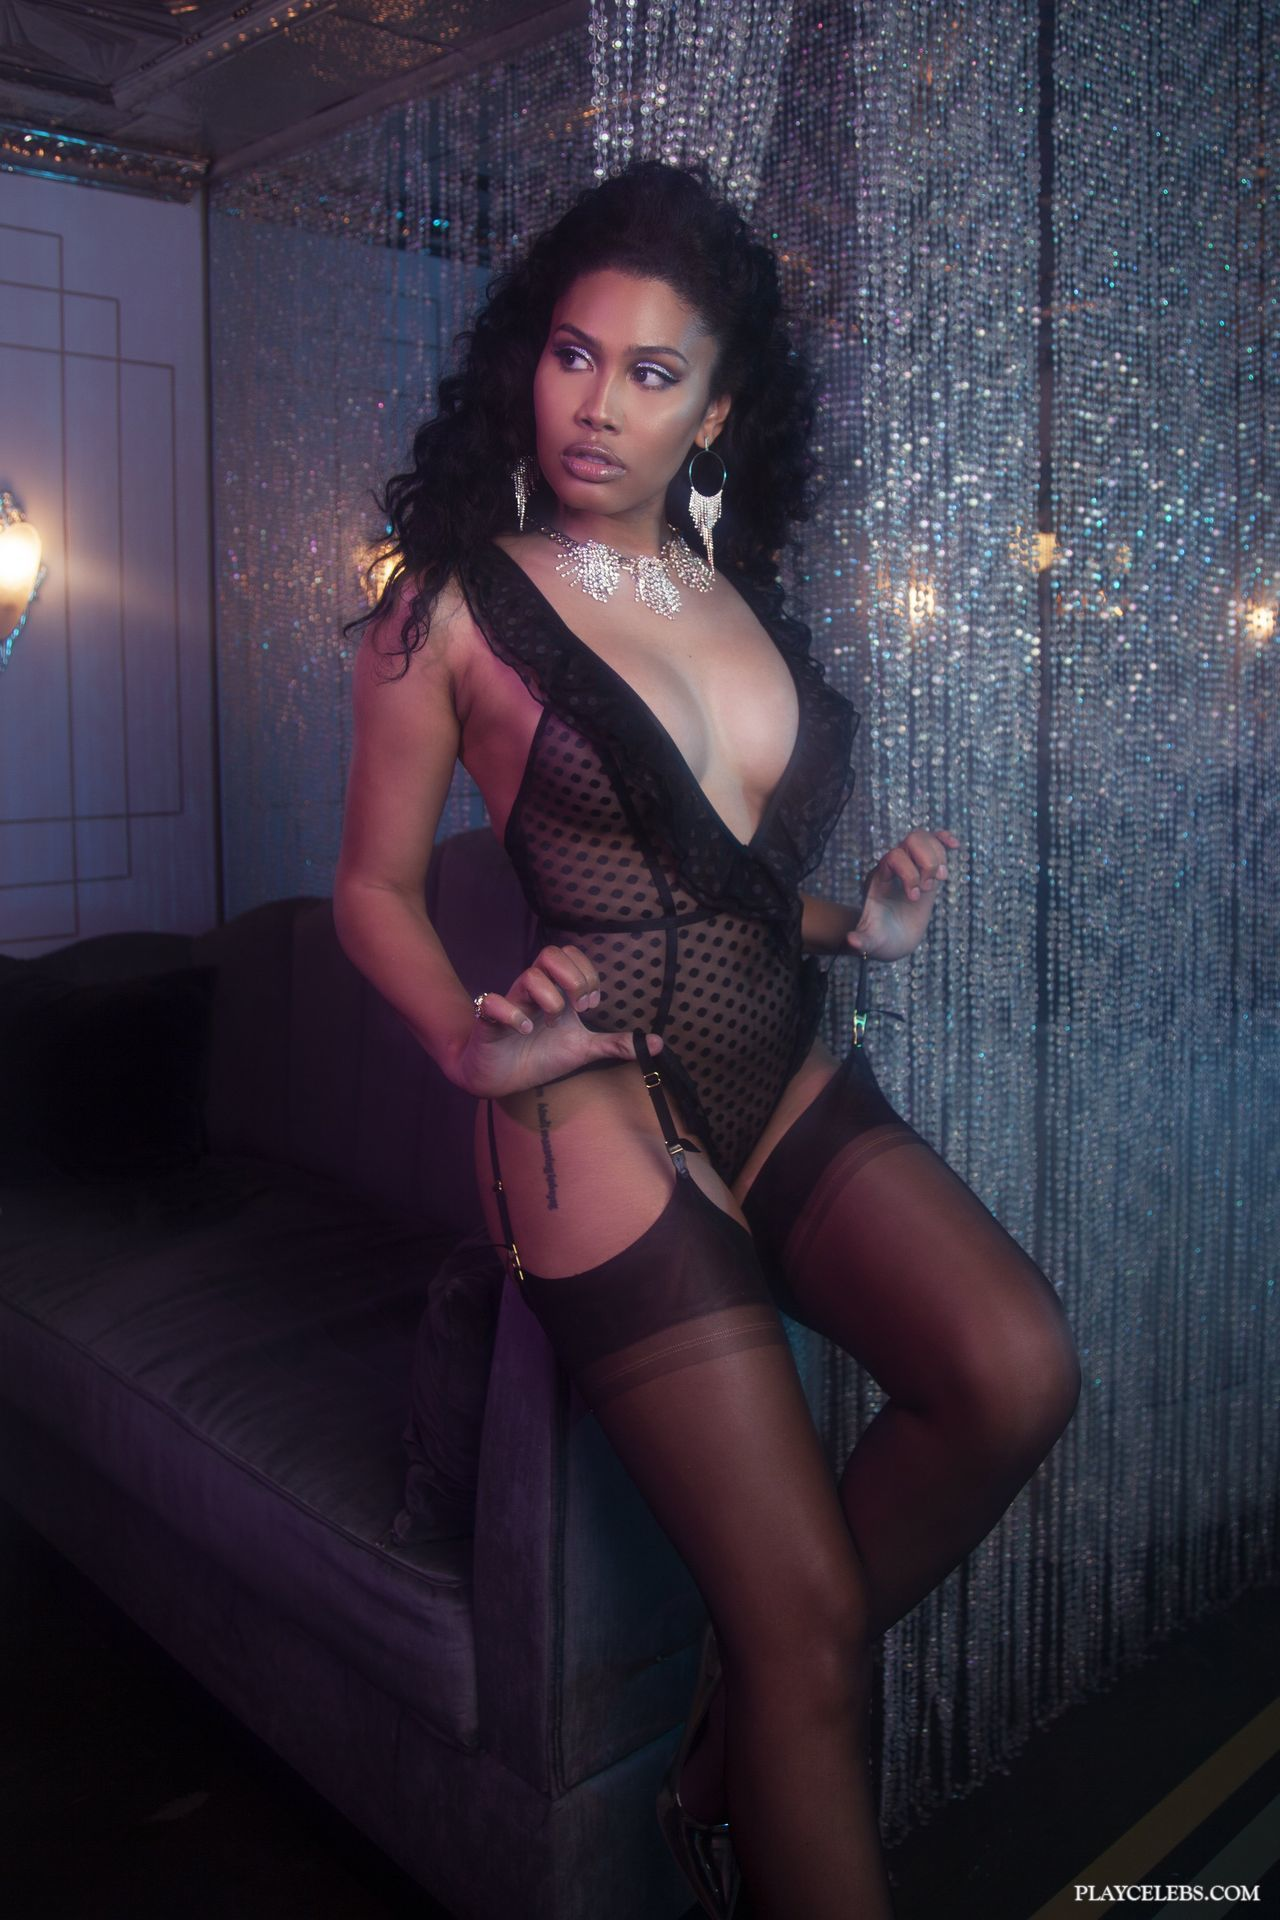 Leyna Bloom Looks Hot In Lacy Lingerie